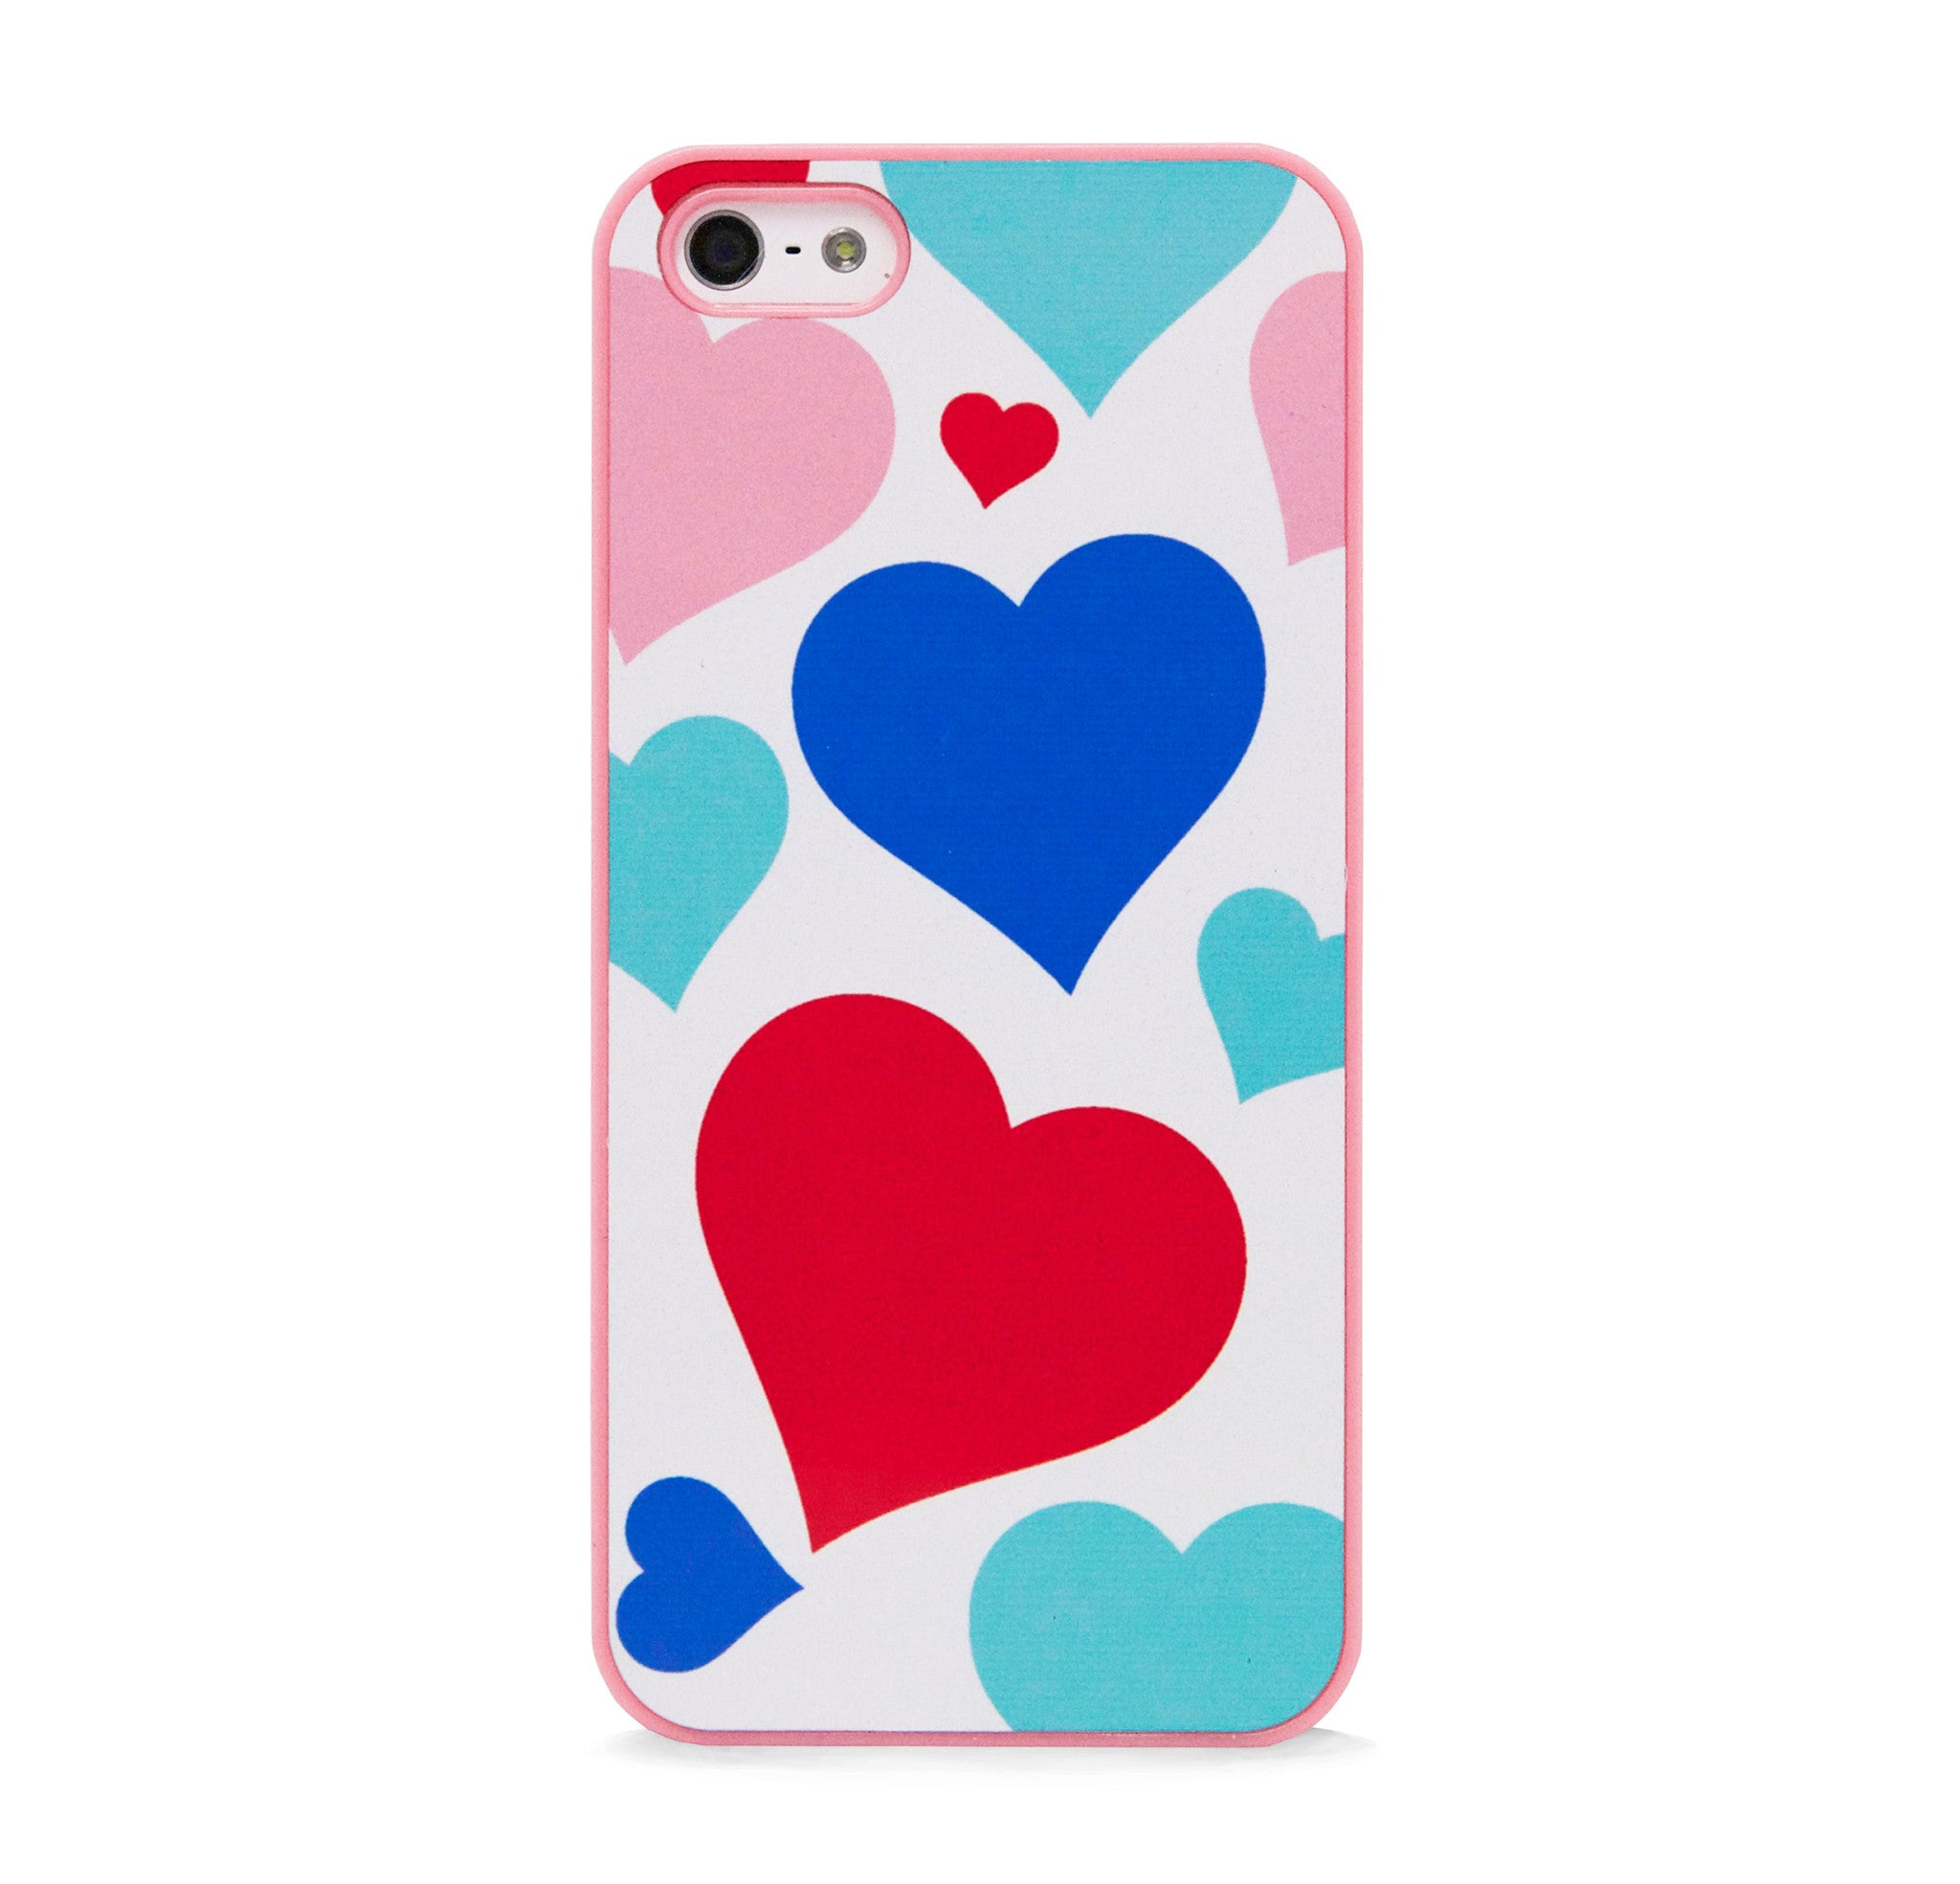 MULTI HEART ALLOVER FOR IPHONE 5/5S